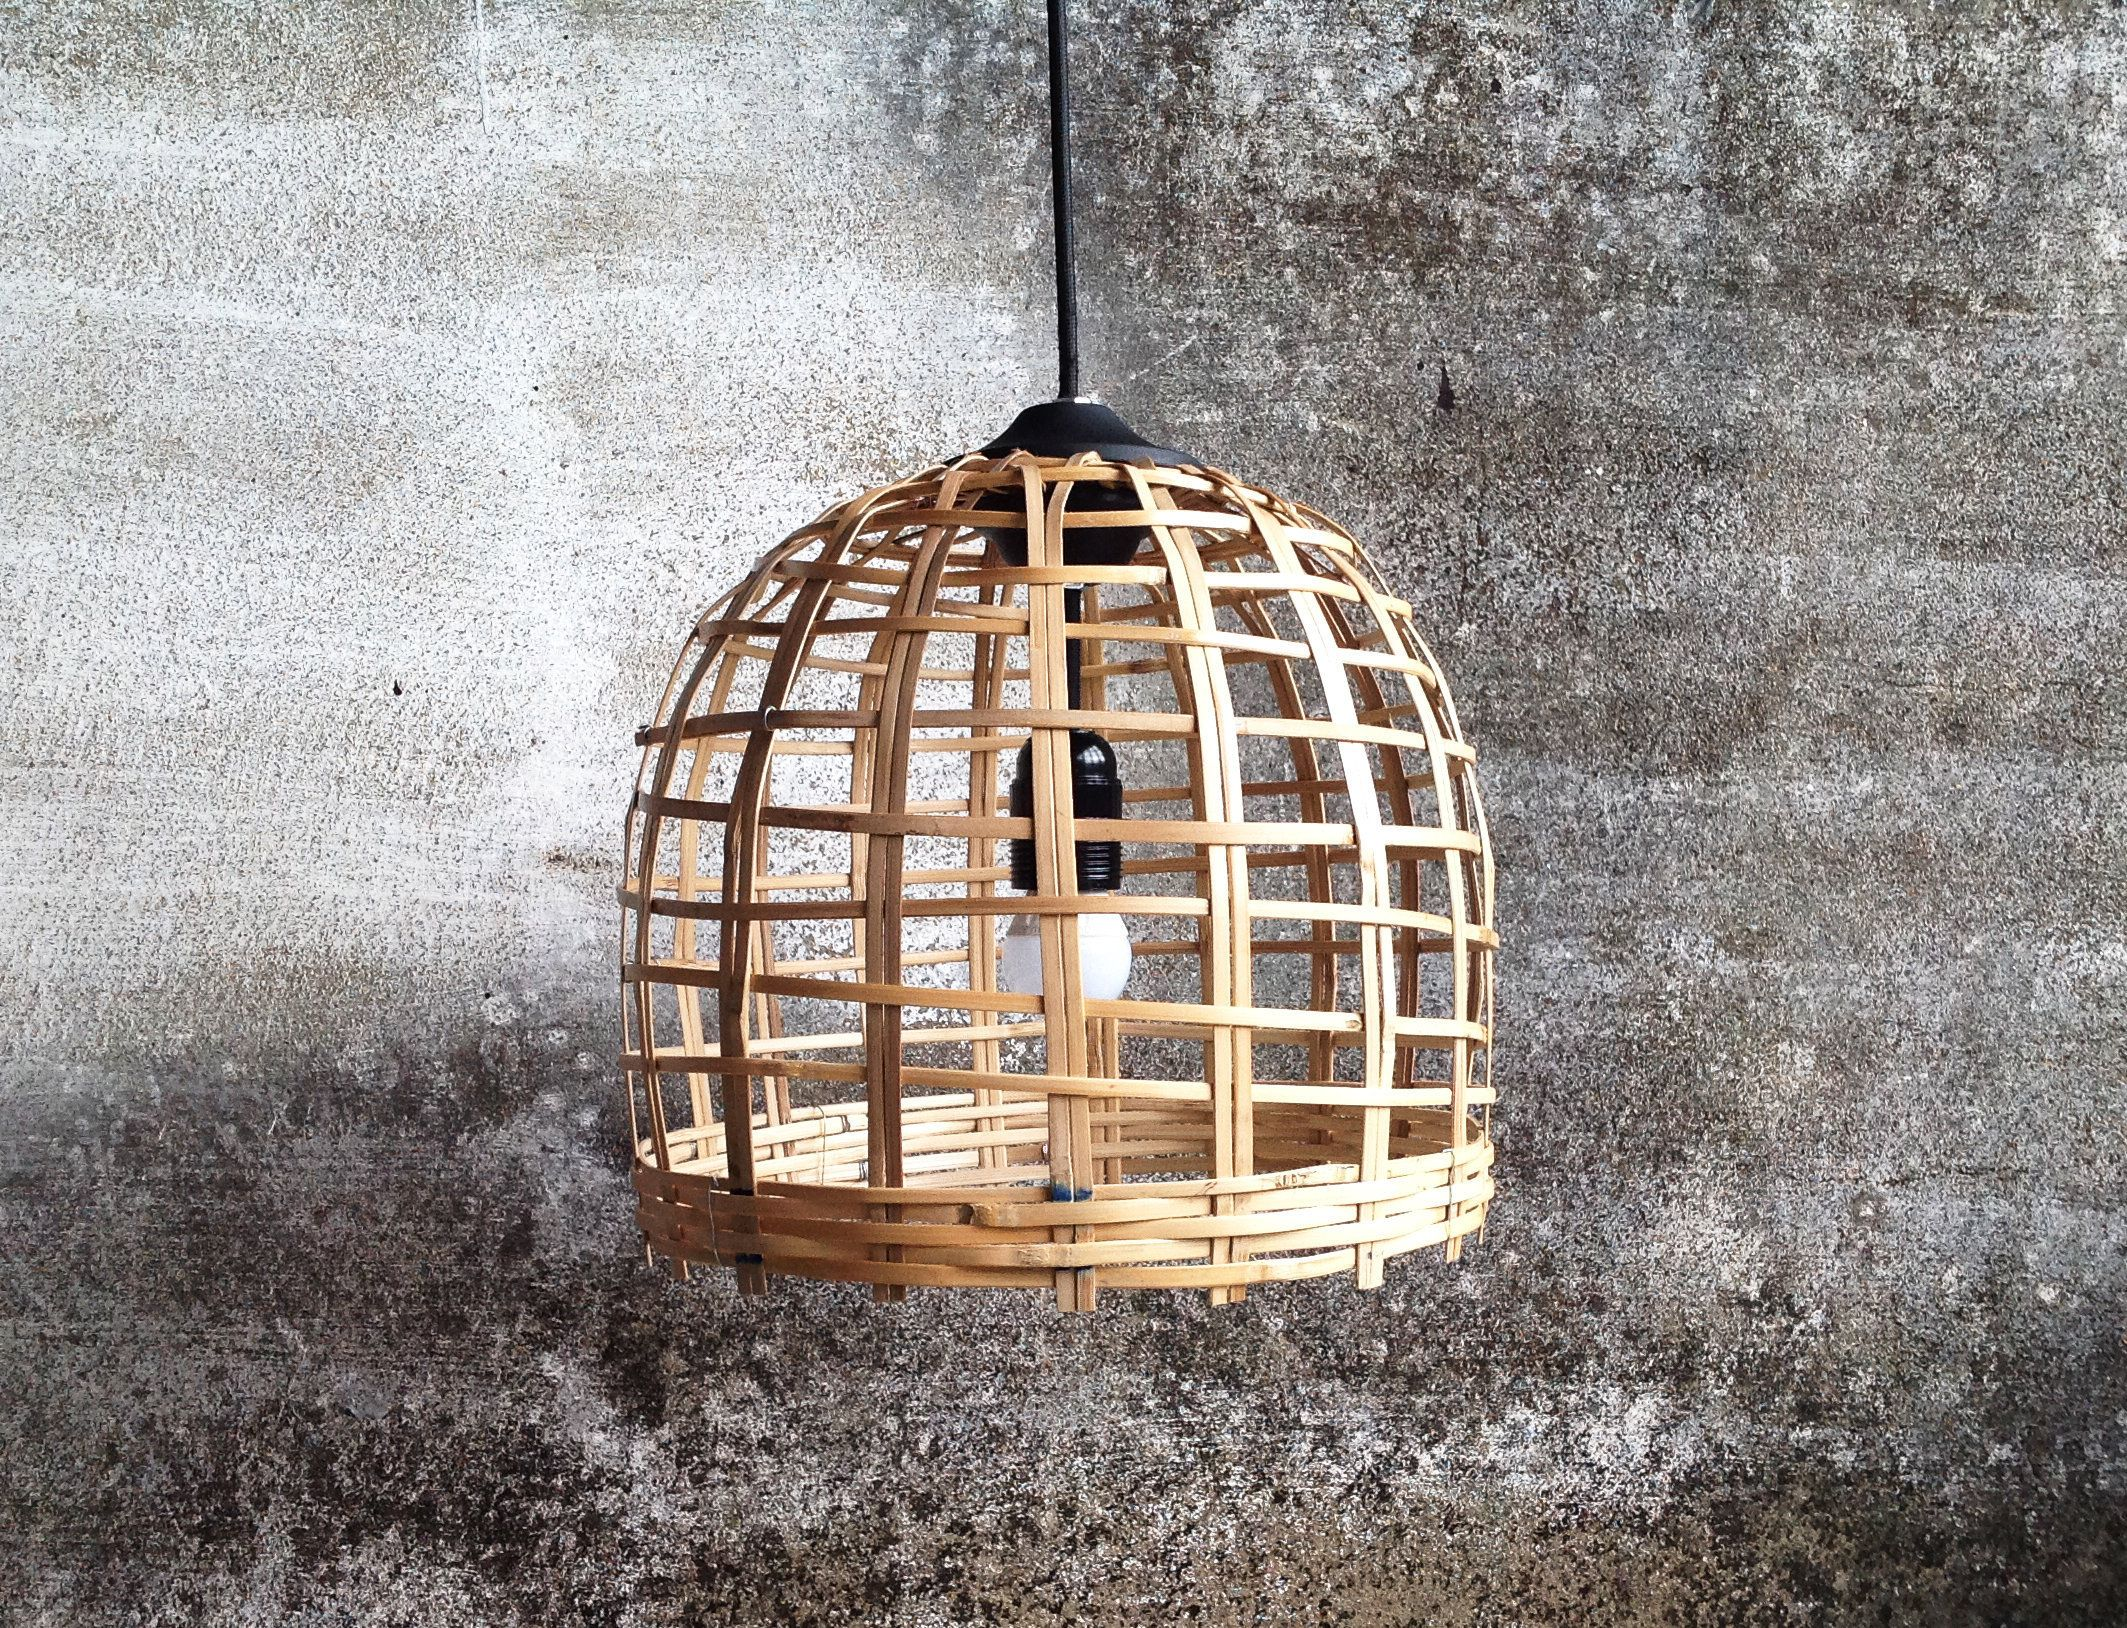 Bedside Pendant Lights Wicker Bamboo Basket Pendant Light Bamboo Woven Shade Hanging Lamp Size 11 Bedside Pendant Lights Pendant Light Bamboo Pendant Light